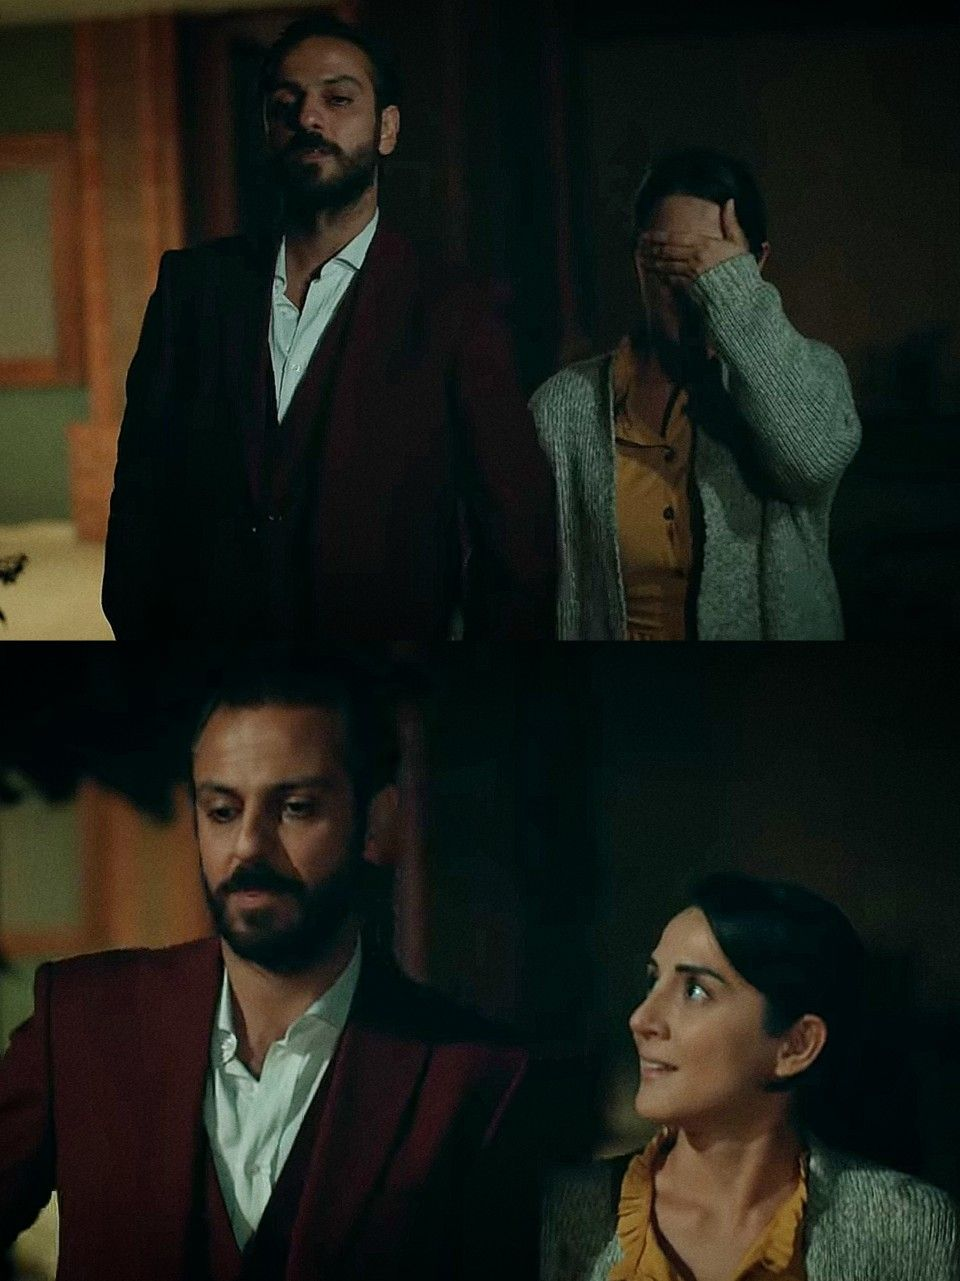 Cukur Salih Ve Sadet In 2021 Fictional Characters Couples Pictures